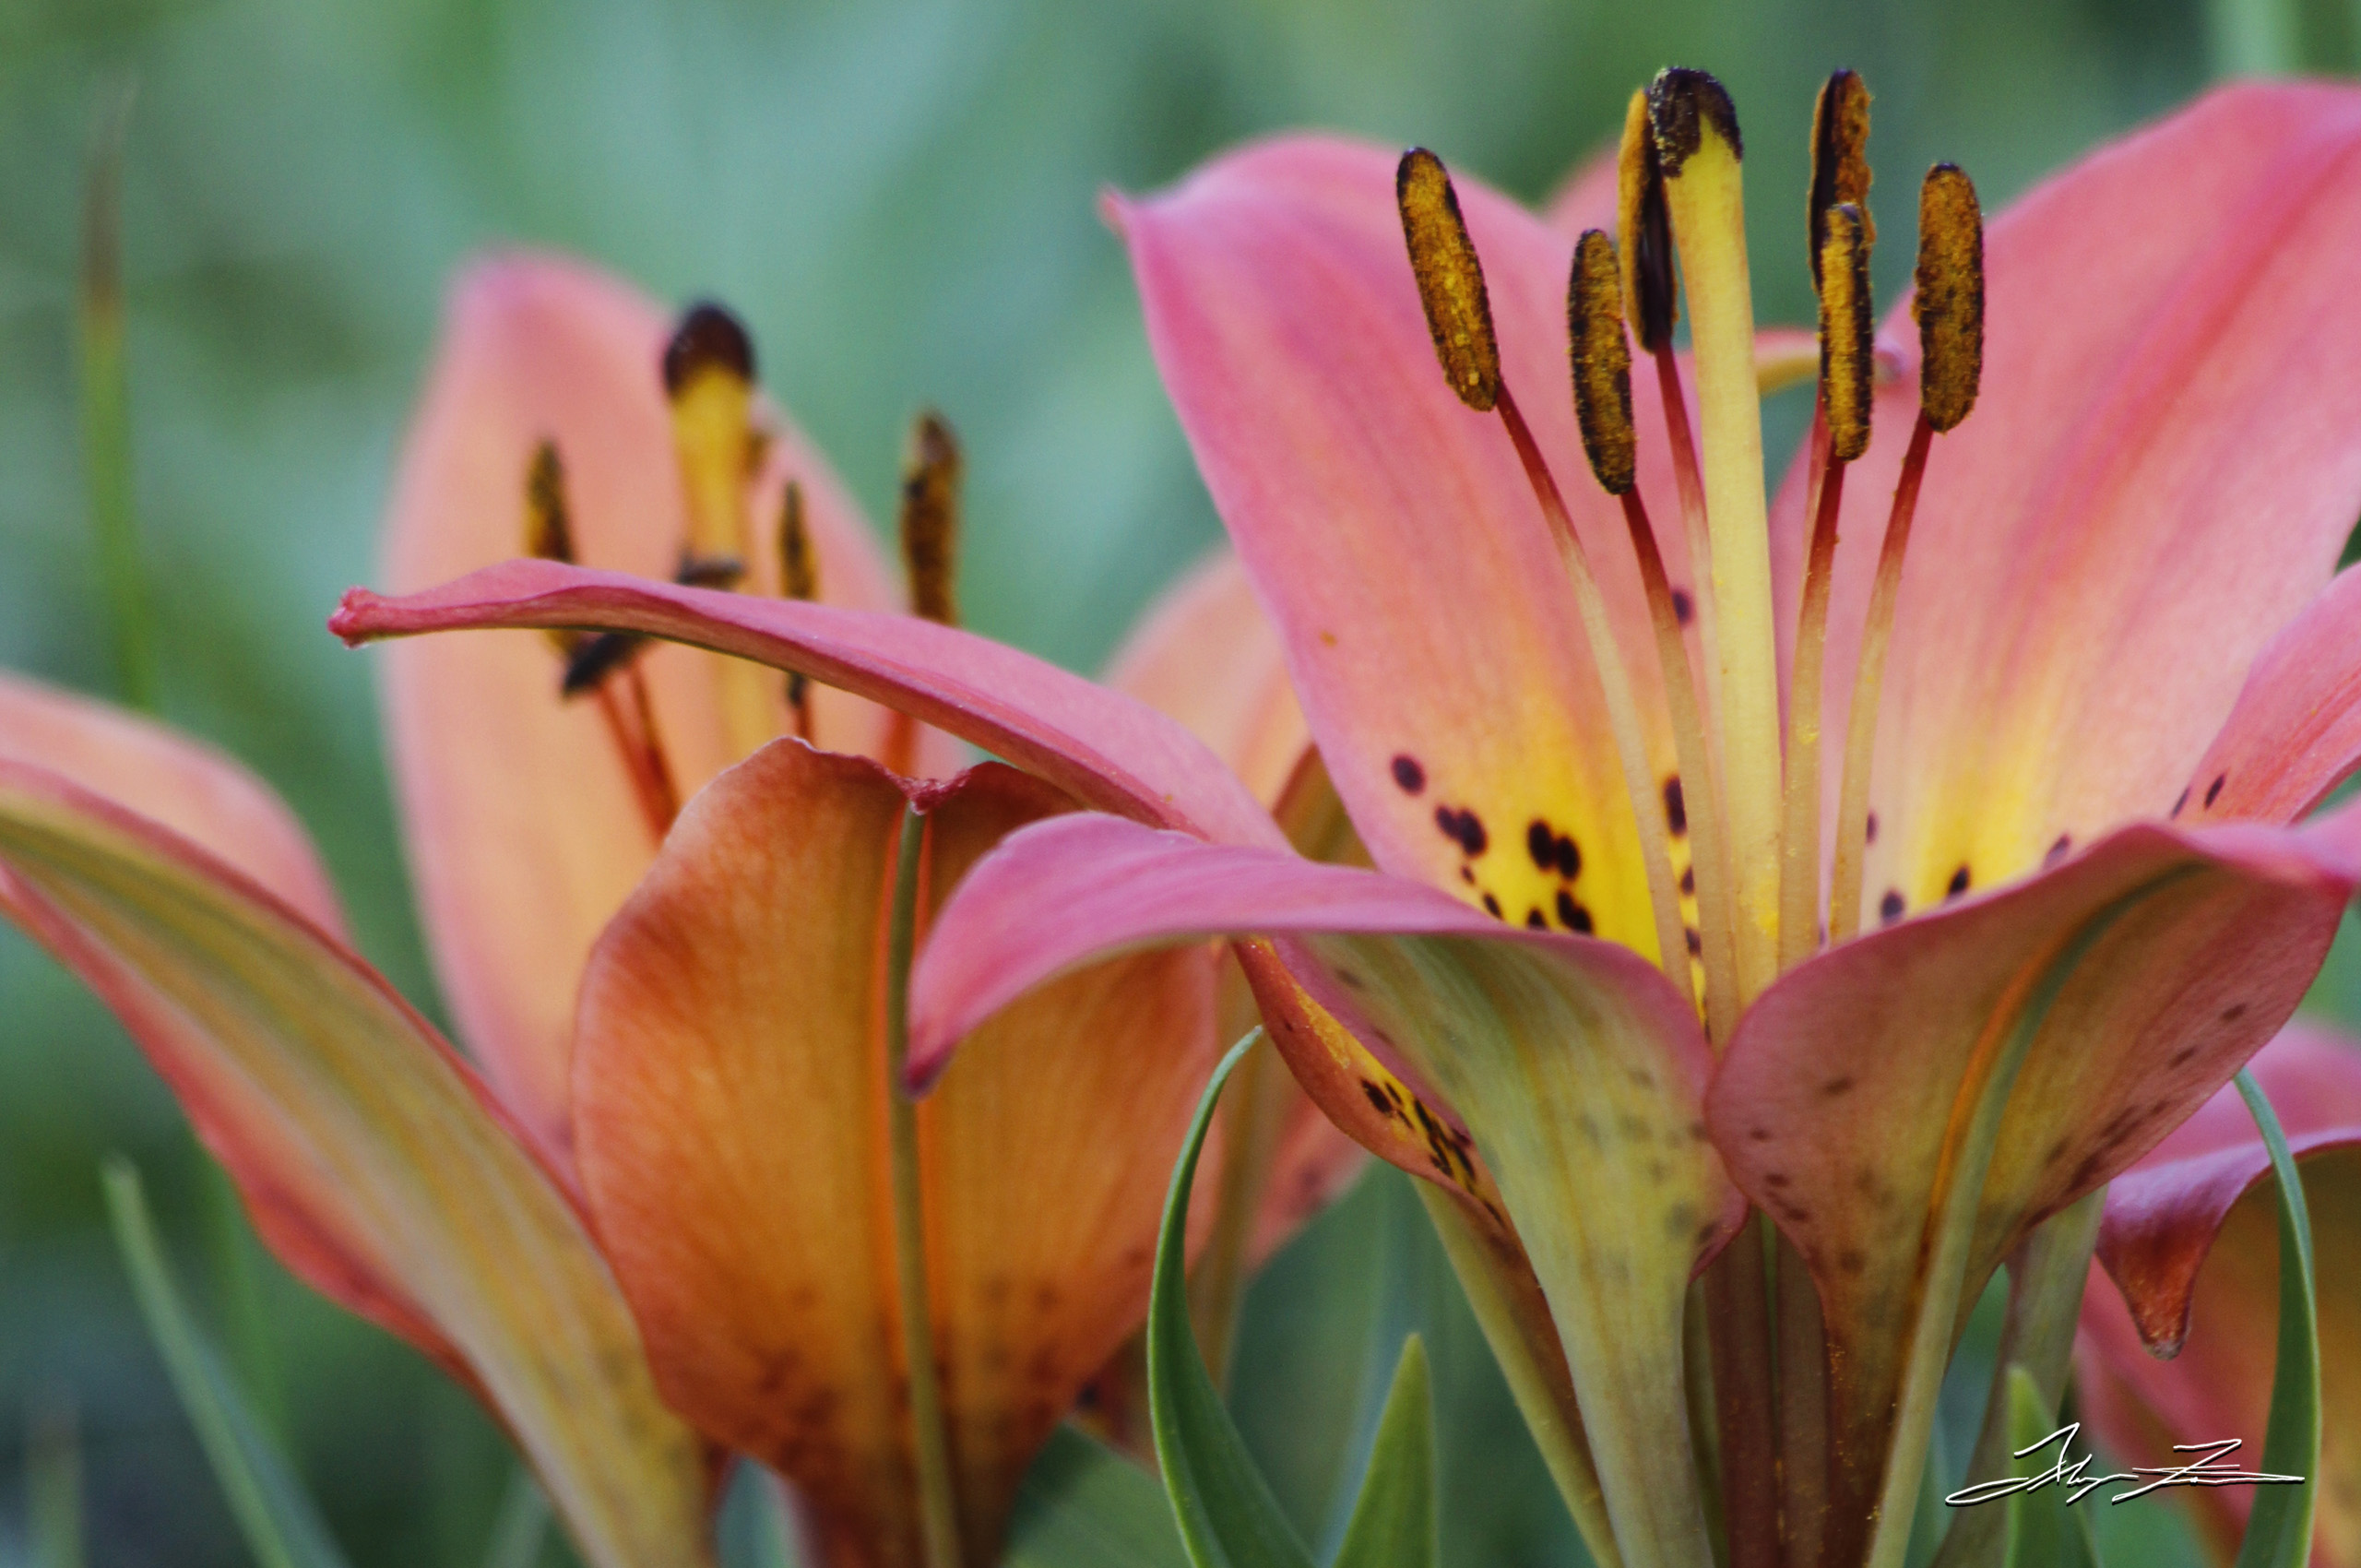 Flowers captured by photographer and DPUB student Alayna Fairman